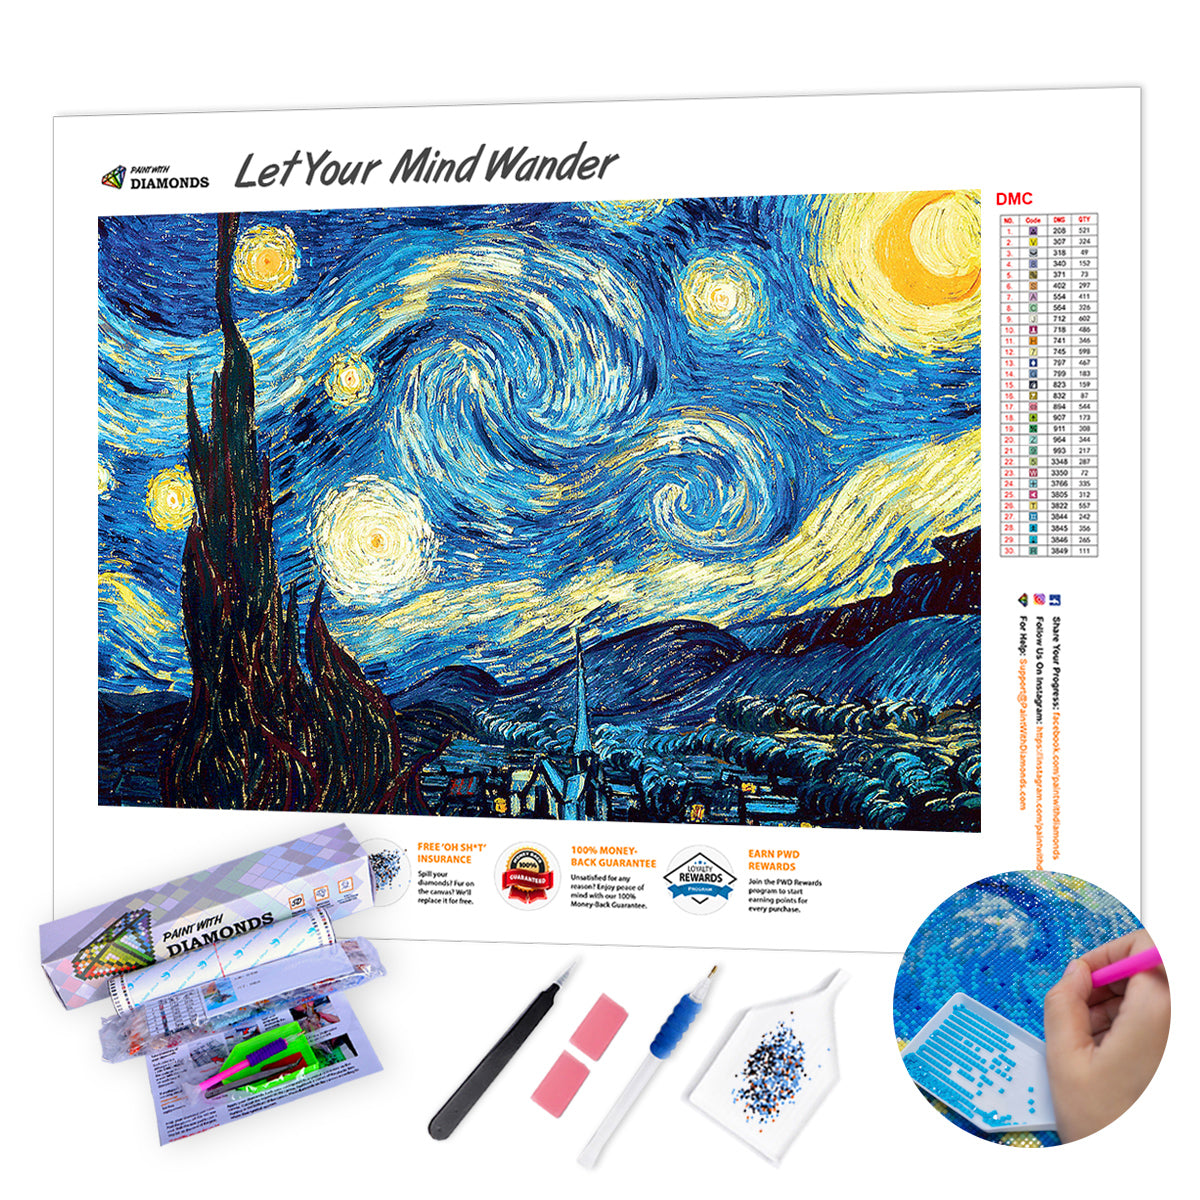 Starry Night by Van Gogh - Ships From US - 60x40cm